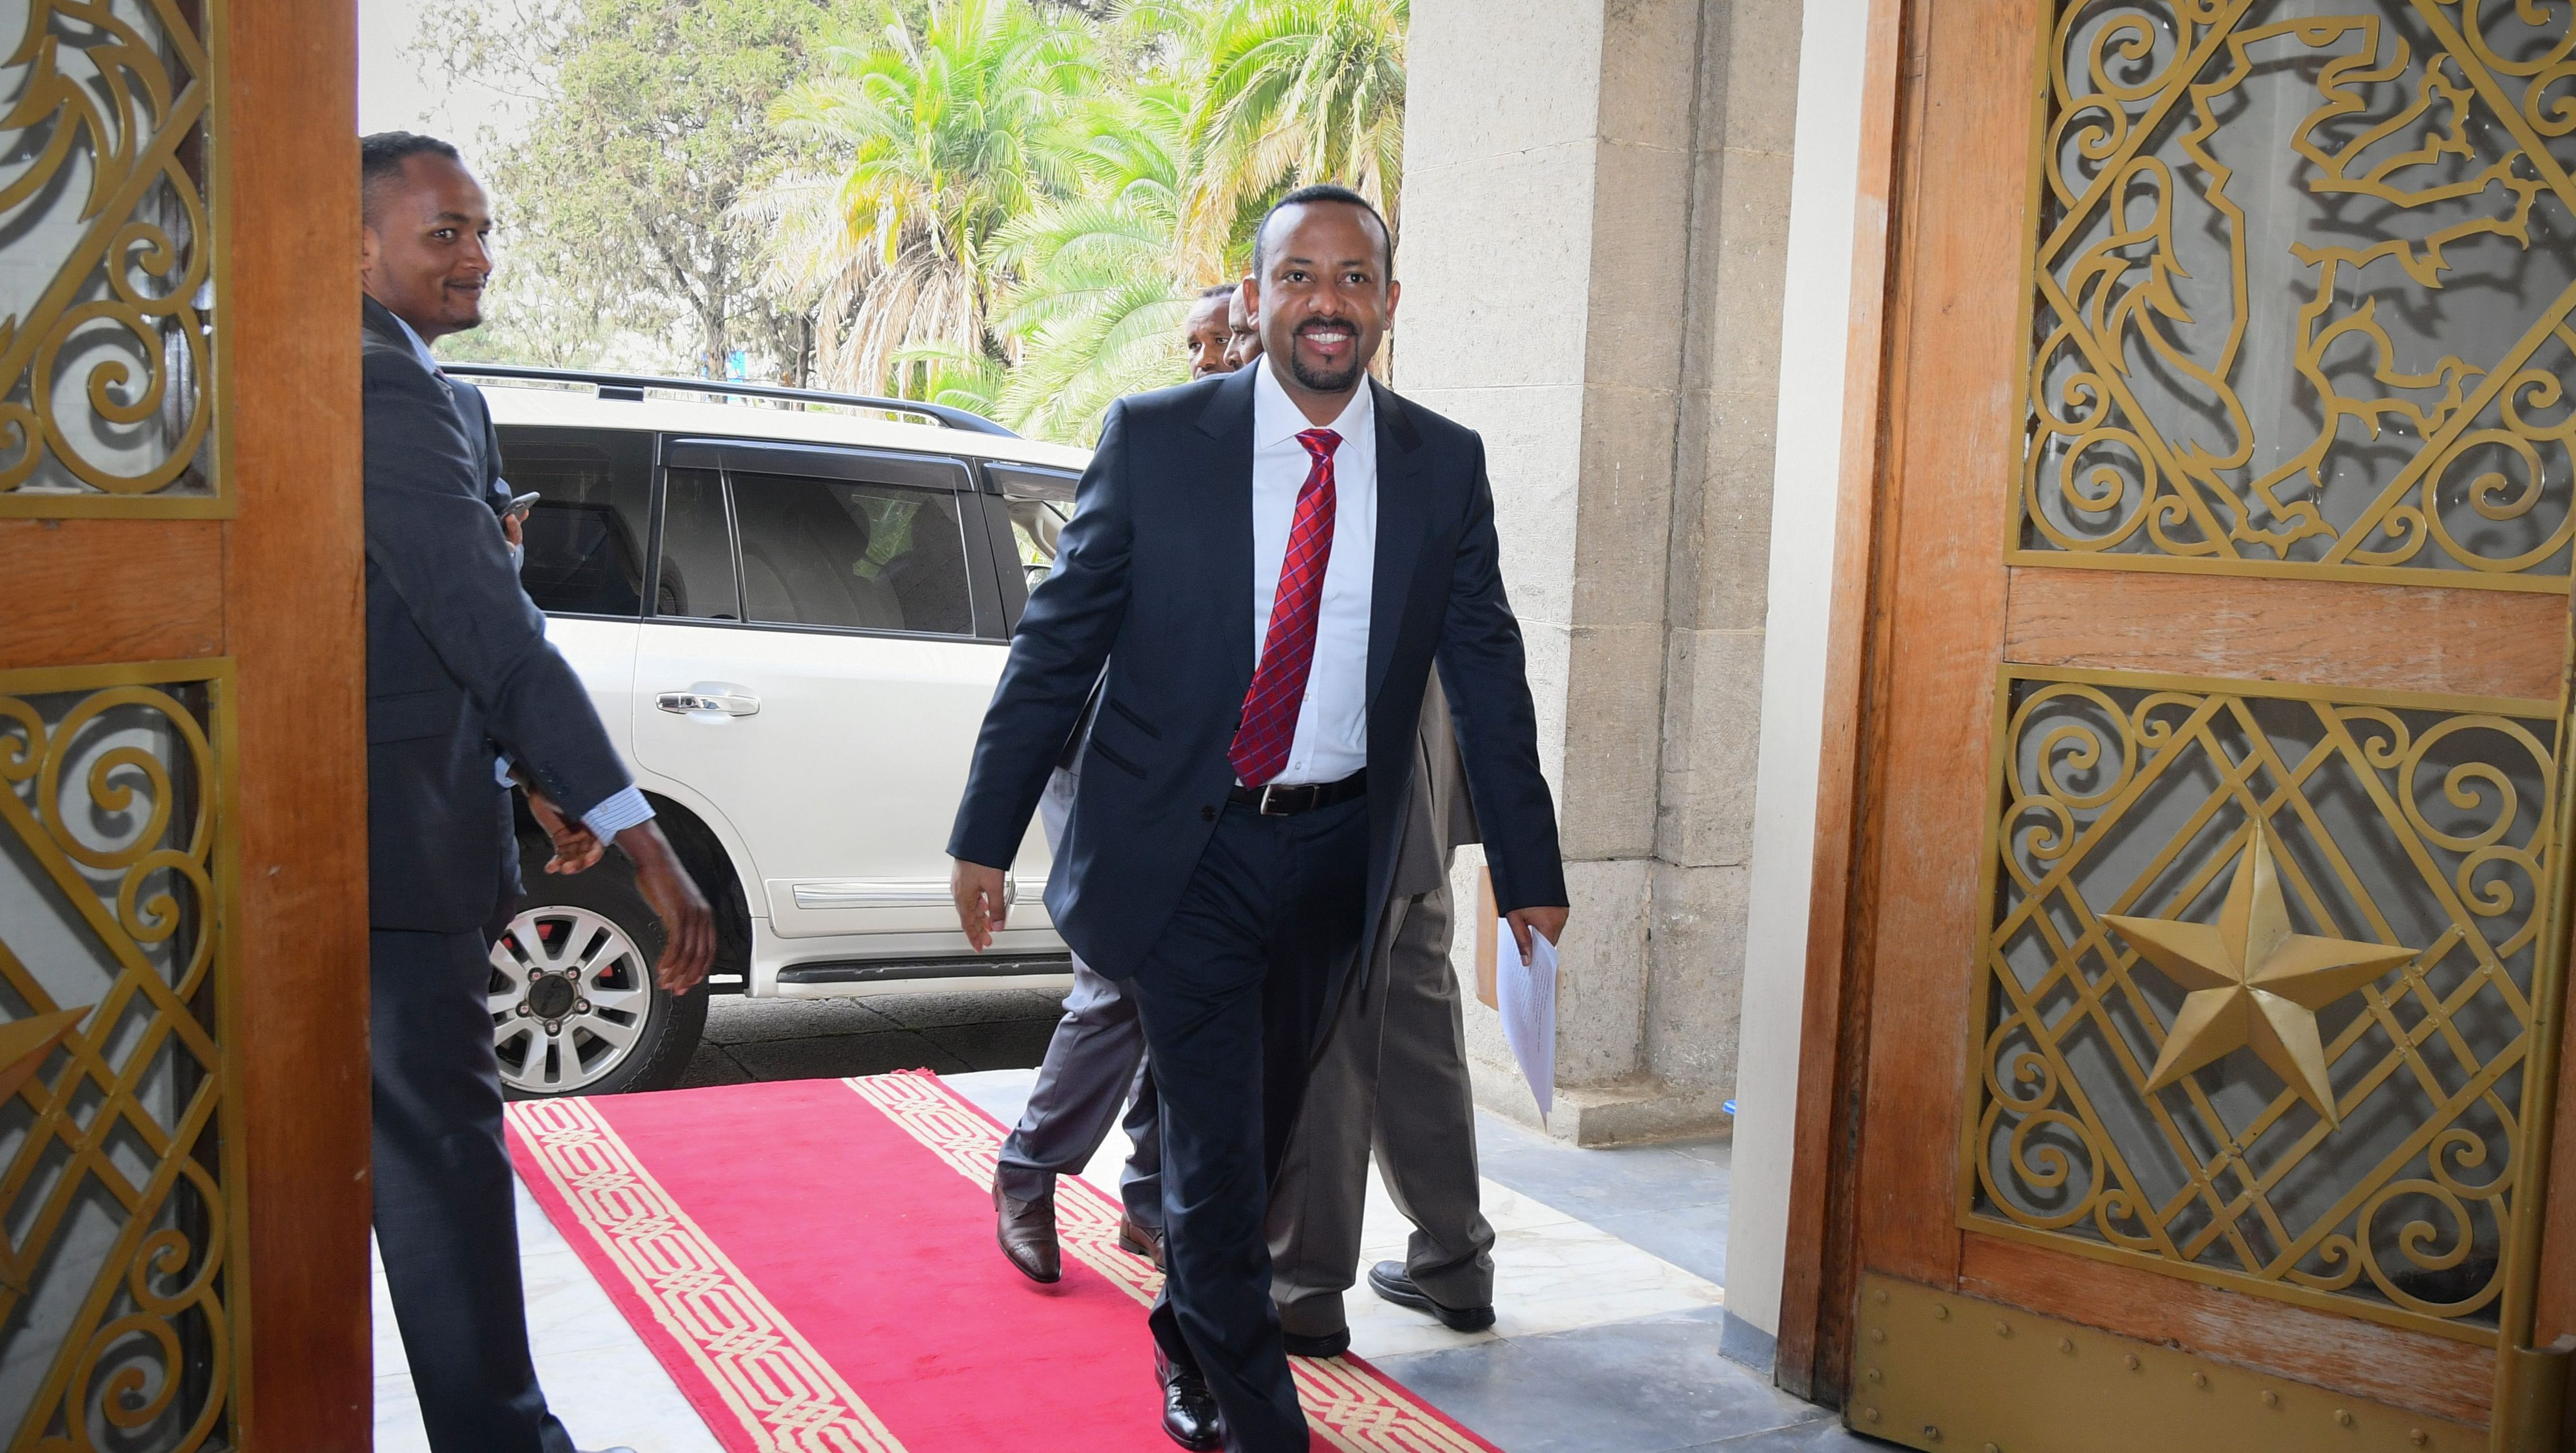 Ethiopia's new Prime Minister Abiy Ahmed arrives at the parliament for the swearing-in ceremony in the capital Addis Ababa, Ethiopia, 02 April 2017. Ahmed became the country's new top leader after his predecessor Hailemariam Desalegn unexpectedly resigned.